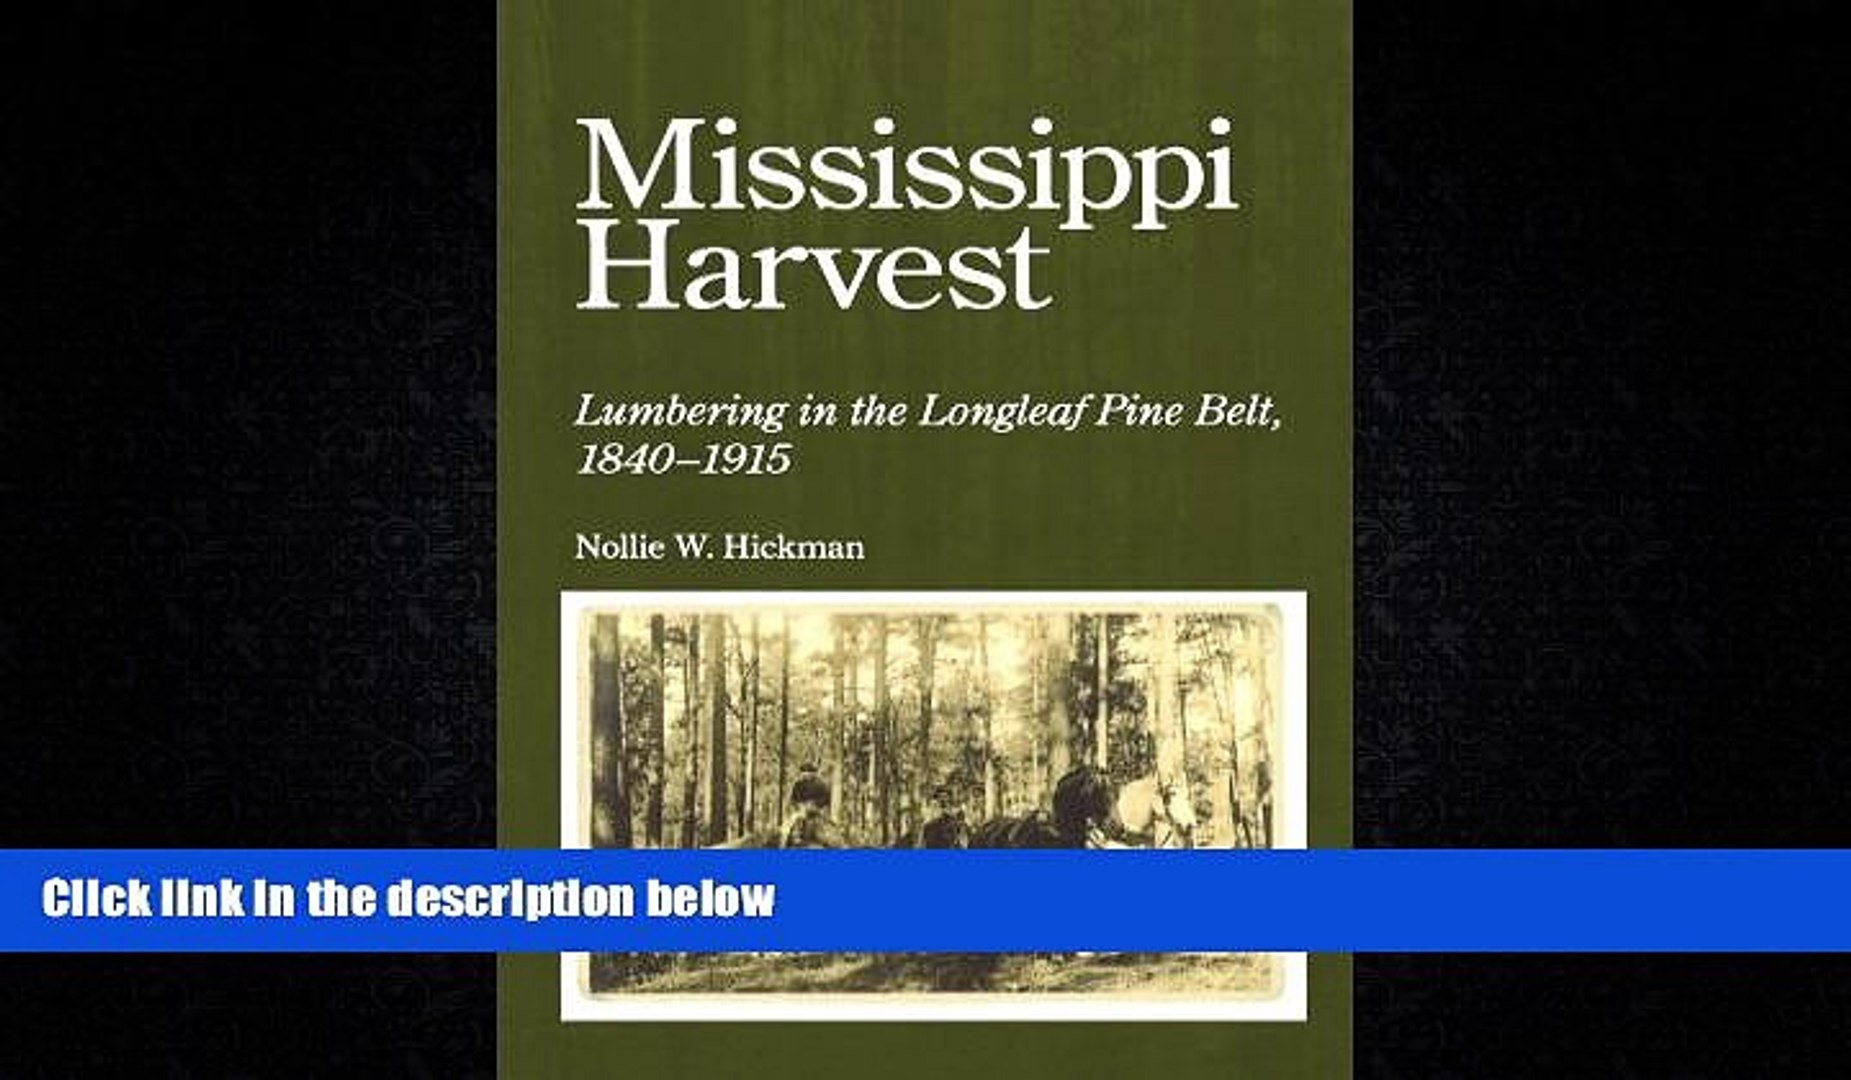 Mississippi Harvest: Lumbering in the Longleaf Pine Belt, 1840-1915